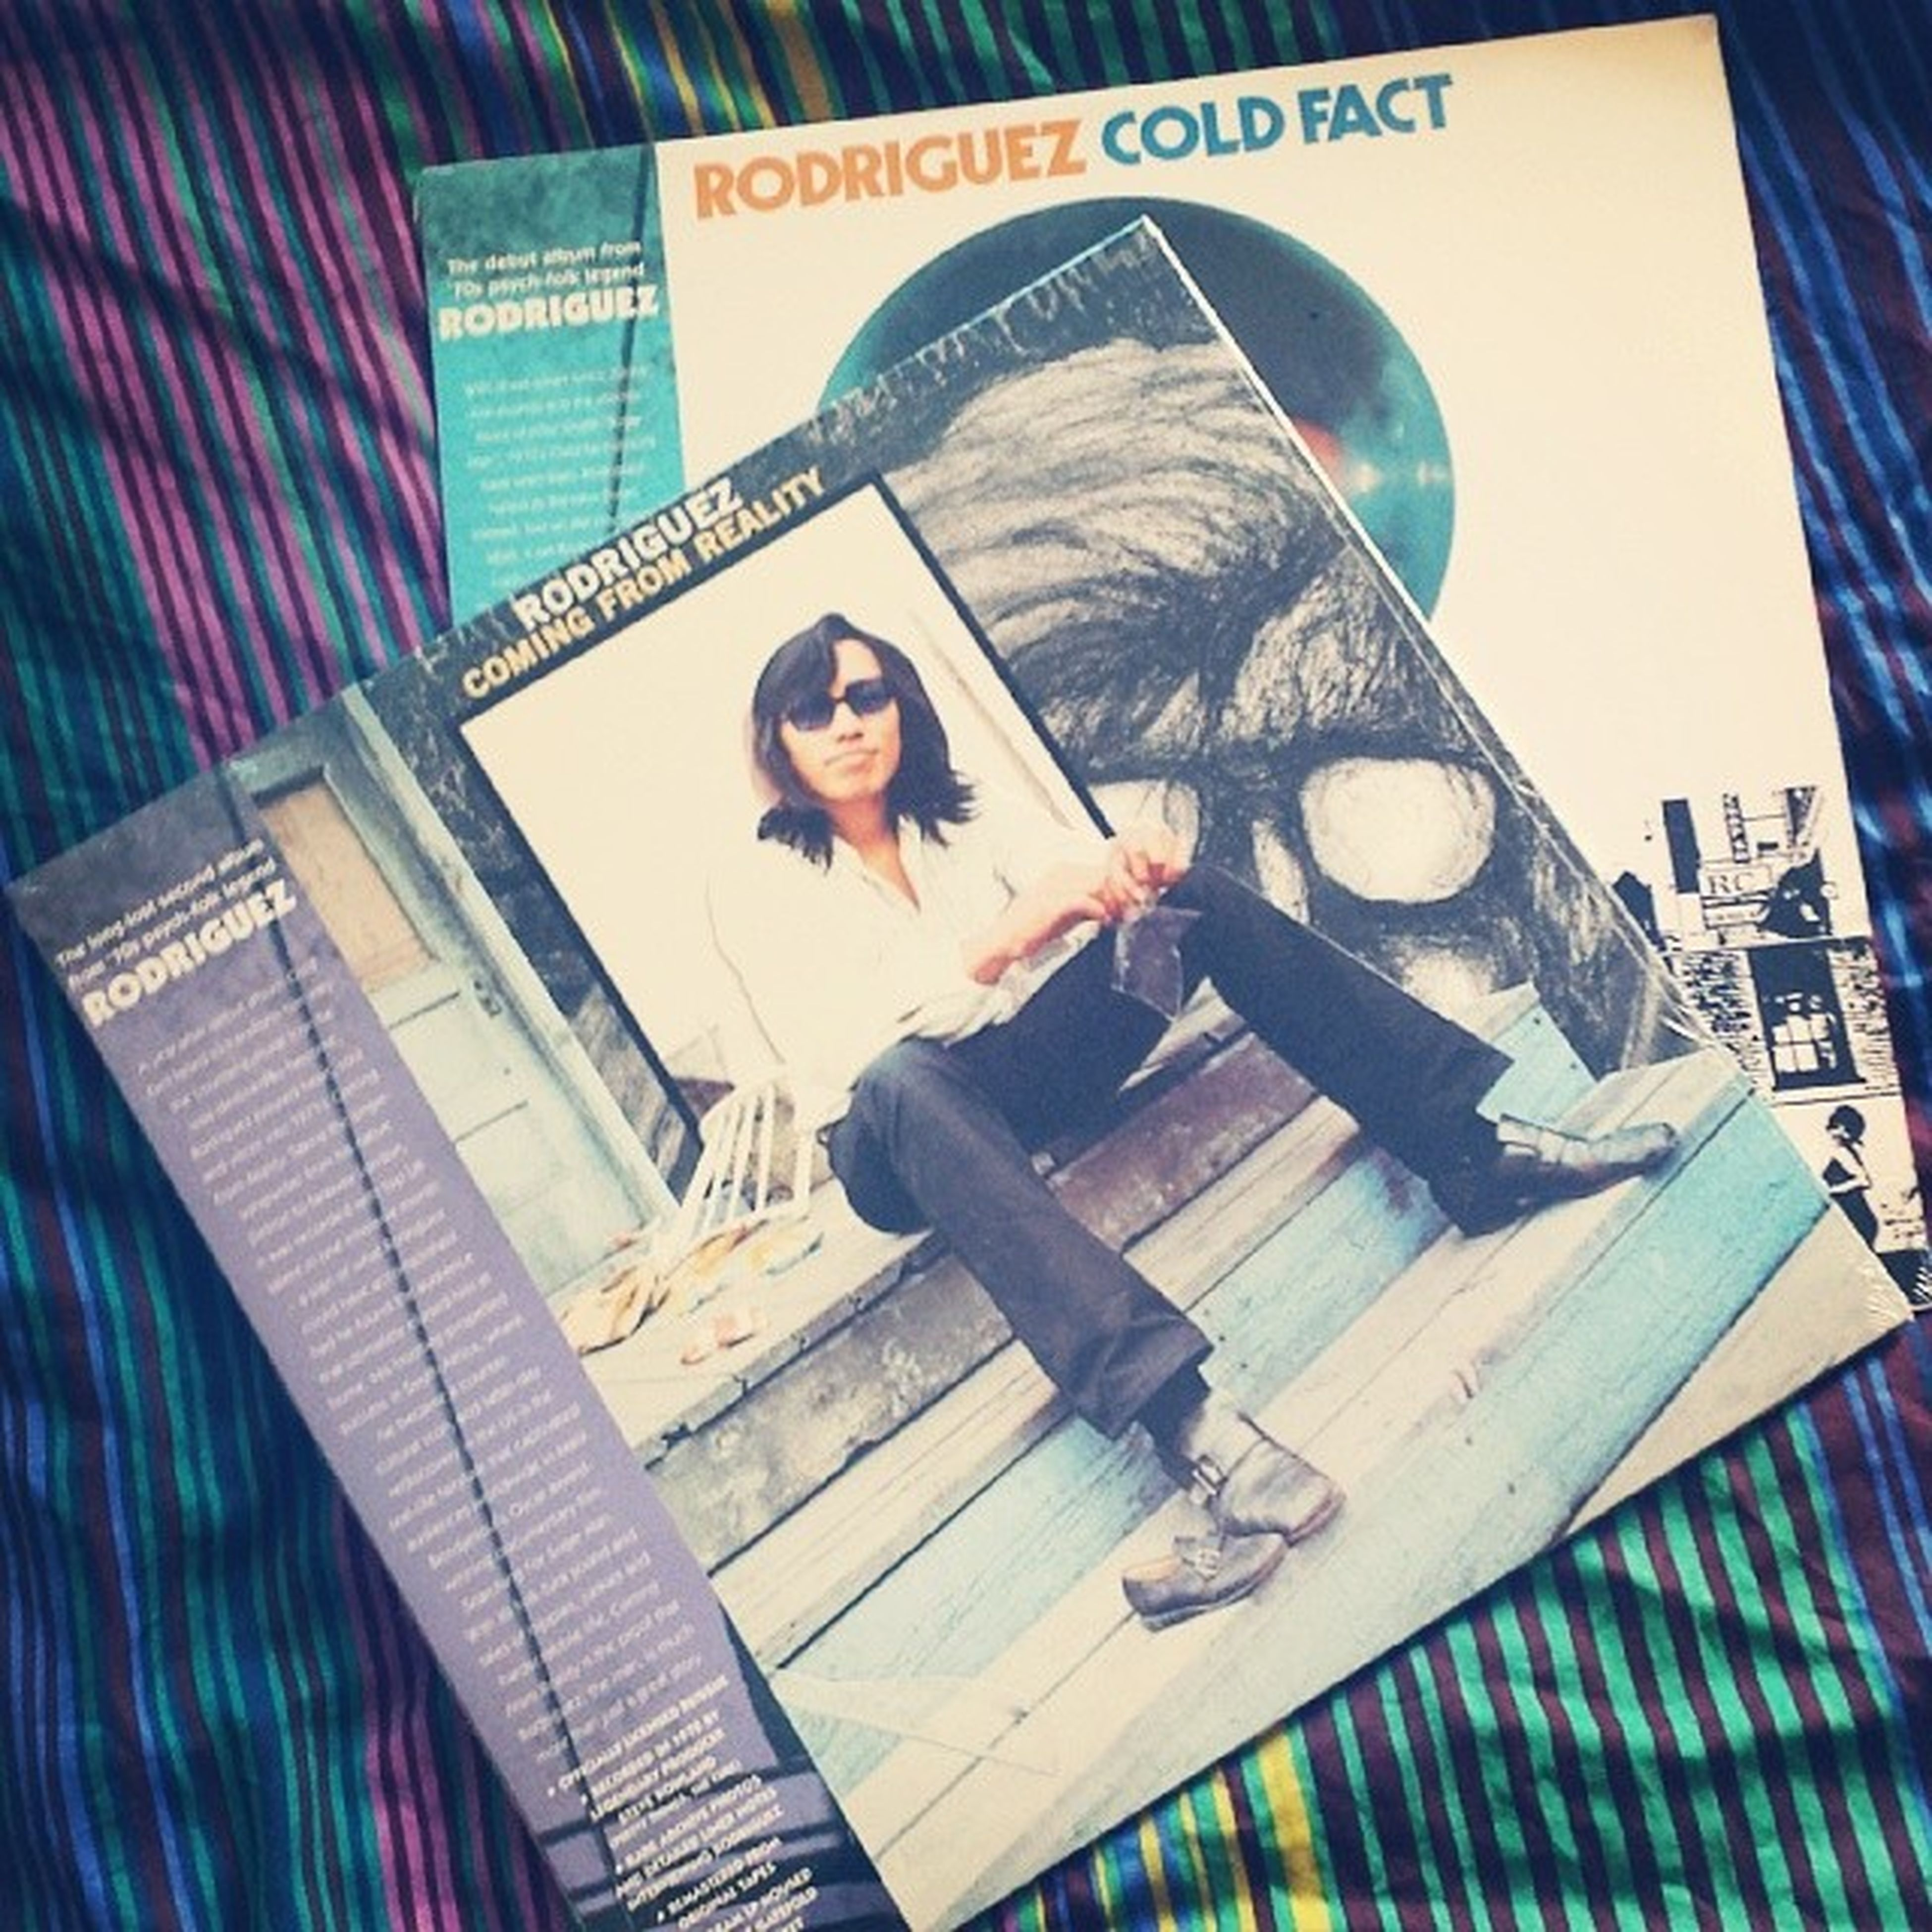 Best Christmas gift!! Vinyl Rodriguez SixtoRodriguez sugarman searching for sugar man comingfromreality coldfact music